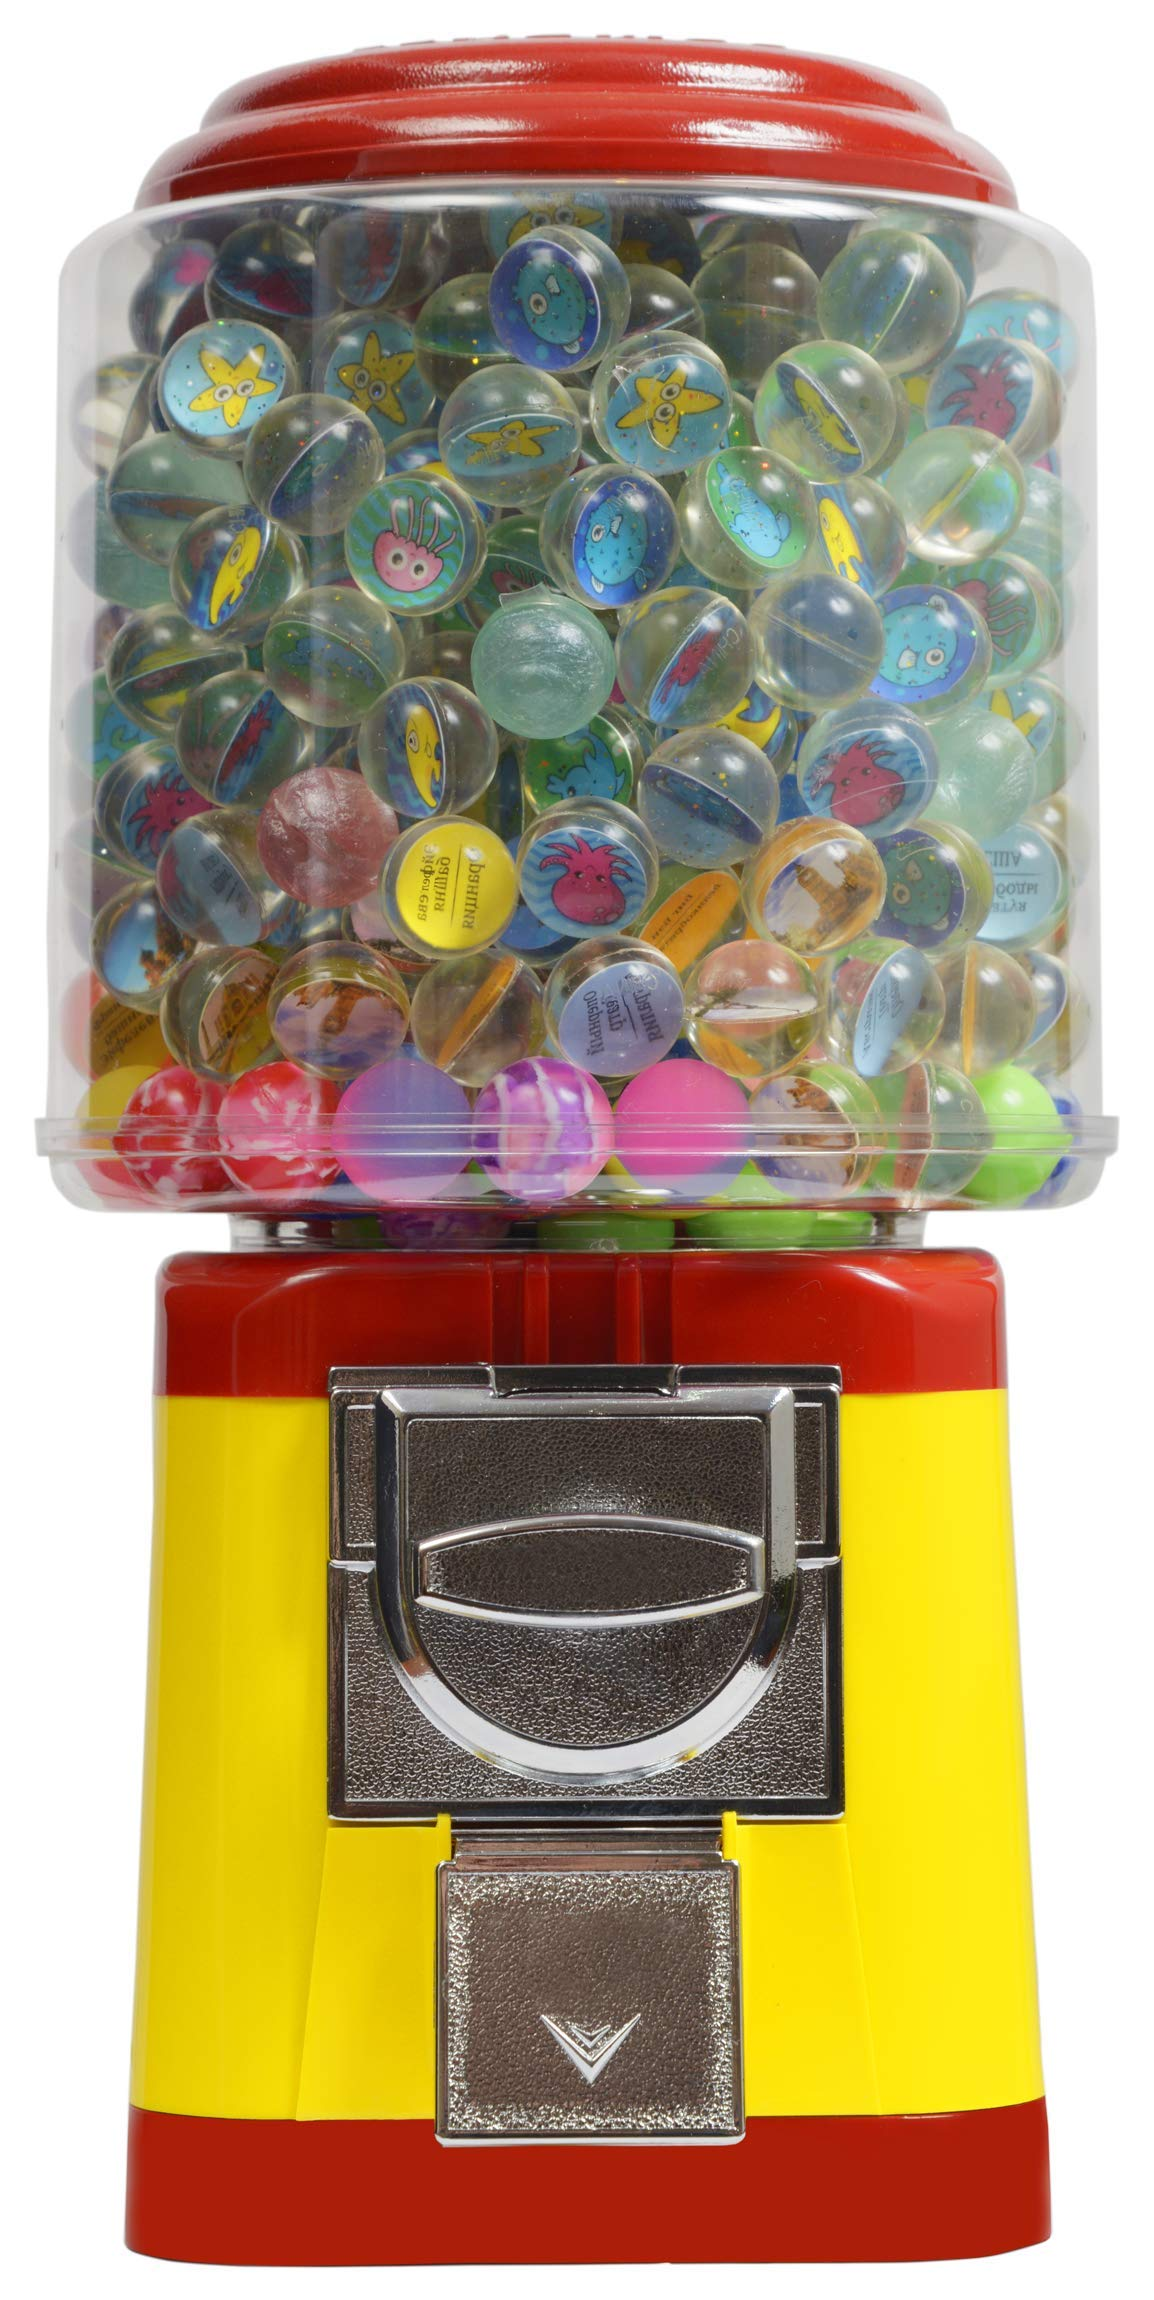 Gumball Vending Machine & Bouncy Balls Vending Machine & Toys Vending Machine & Capsule Vending Machine - Yellow Body & Red Trim - without stand